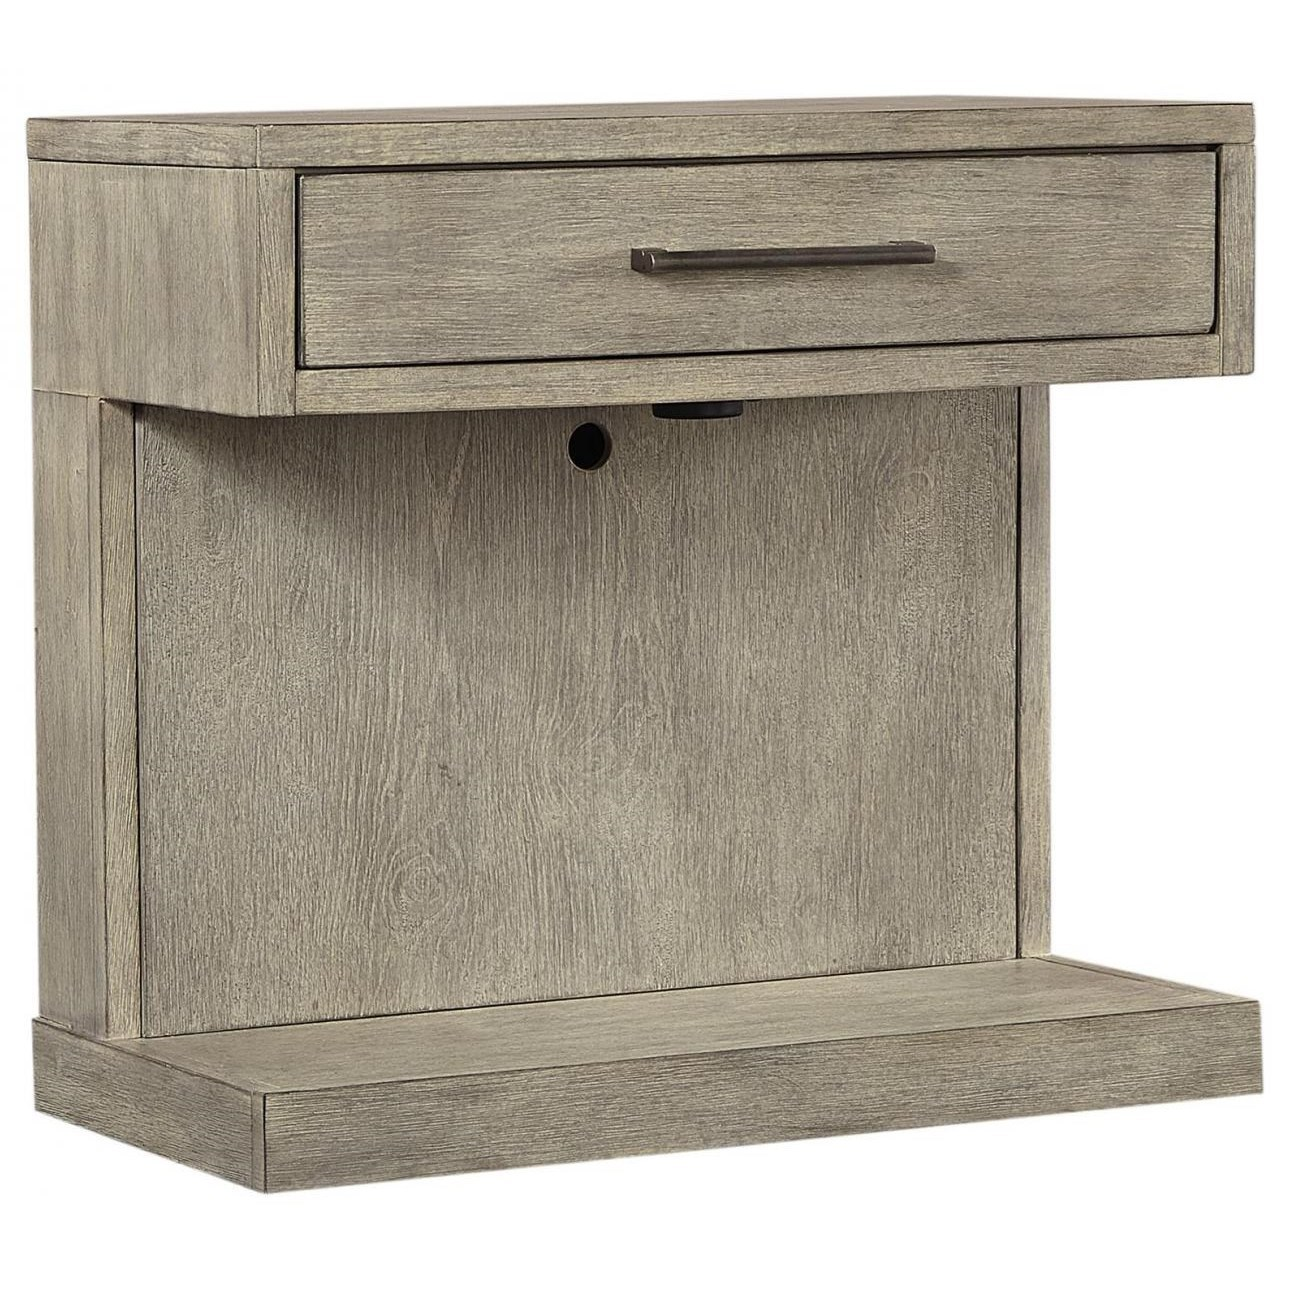 Contemporary Nightstand with 3-Way Touch Lighting